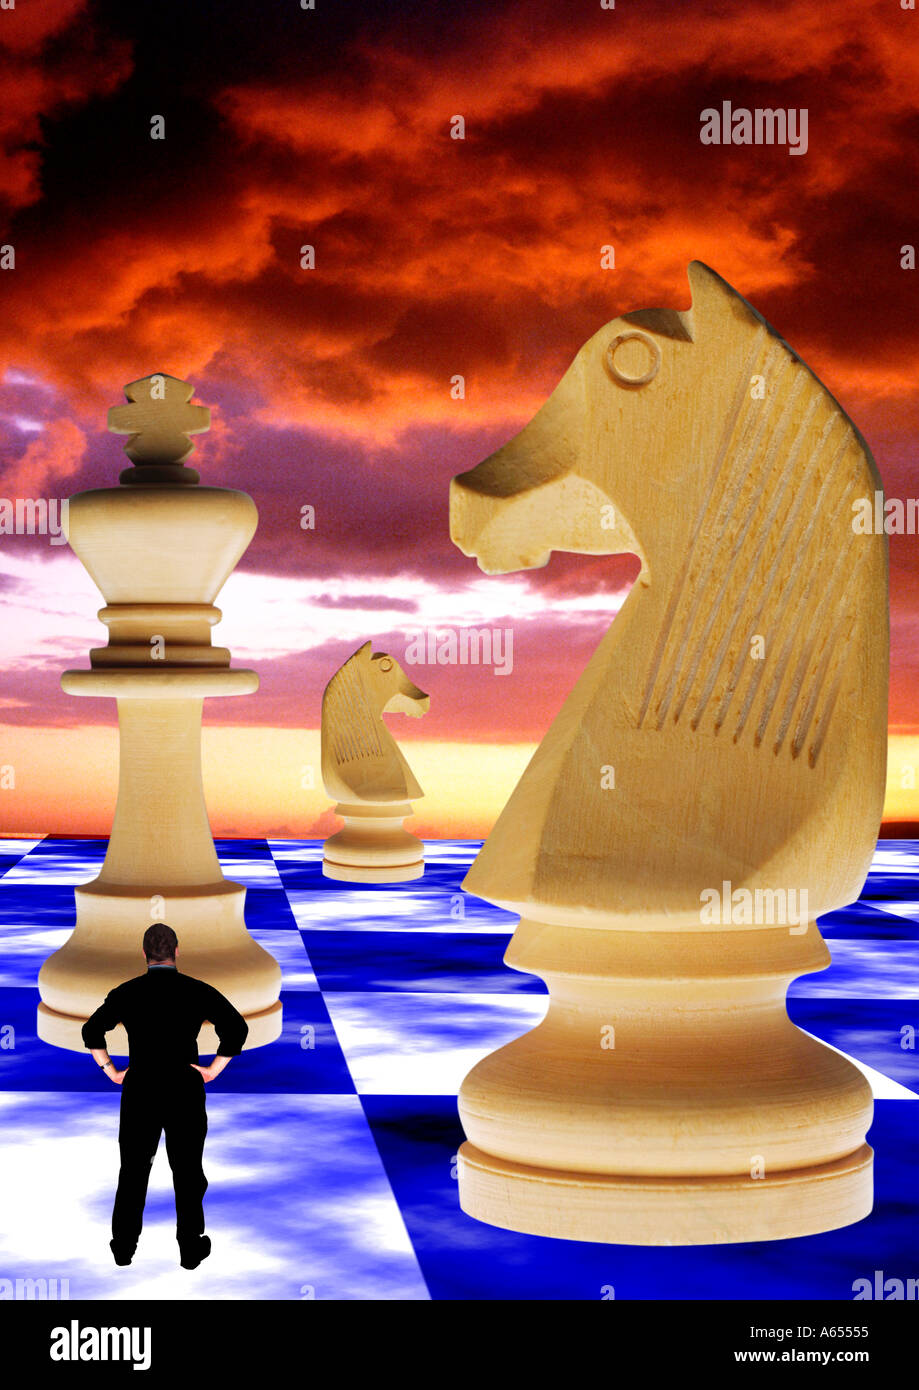 small, tiny, Man looking up at, Giant, Chess, pieces, Game, Abstract concept special effects, strategy, theory, rational, study, mathematical, model, - Stock Image